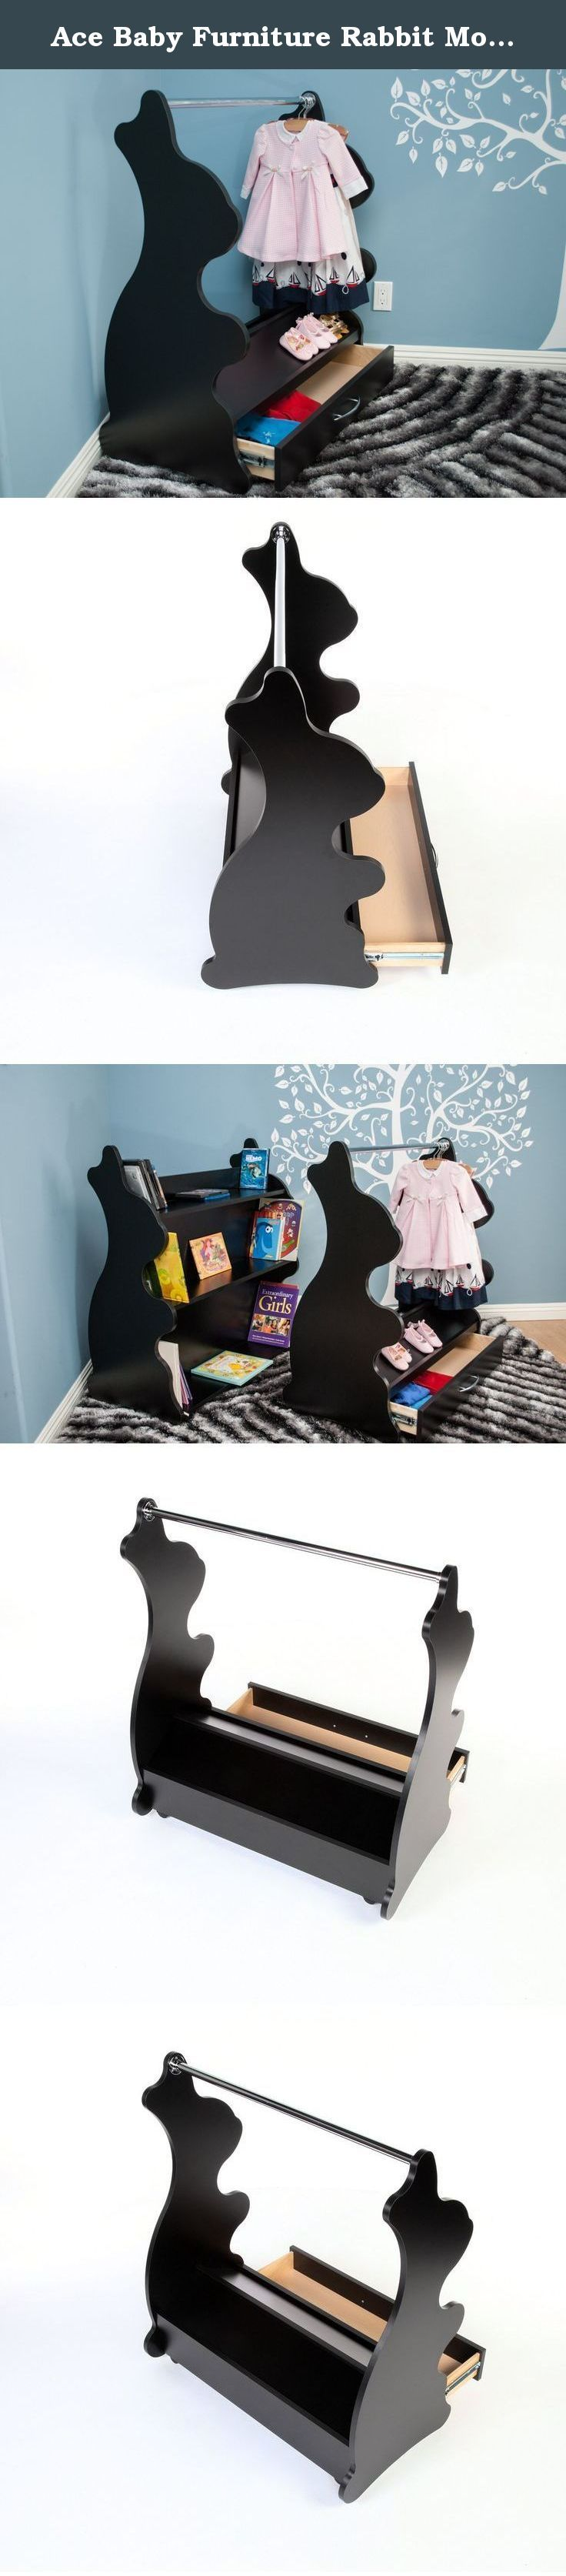 Ace Baby Furniture Rabbit Mobile Dress-Up Clothes and Shoe Organizer, Black. A mobile closet stand that you will cherish for years with your child! Versatile, functional, yet whimsically designed to fit your chic home decor. Perfect for keeping your child's wardrobe neat and tidy. A sturdy chrome-finished clothes rod offer sample.